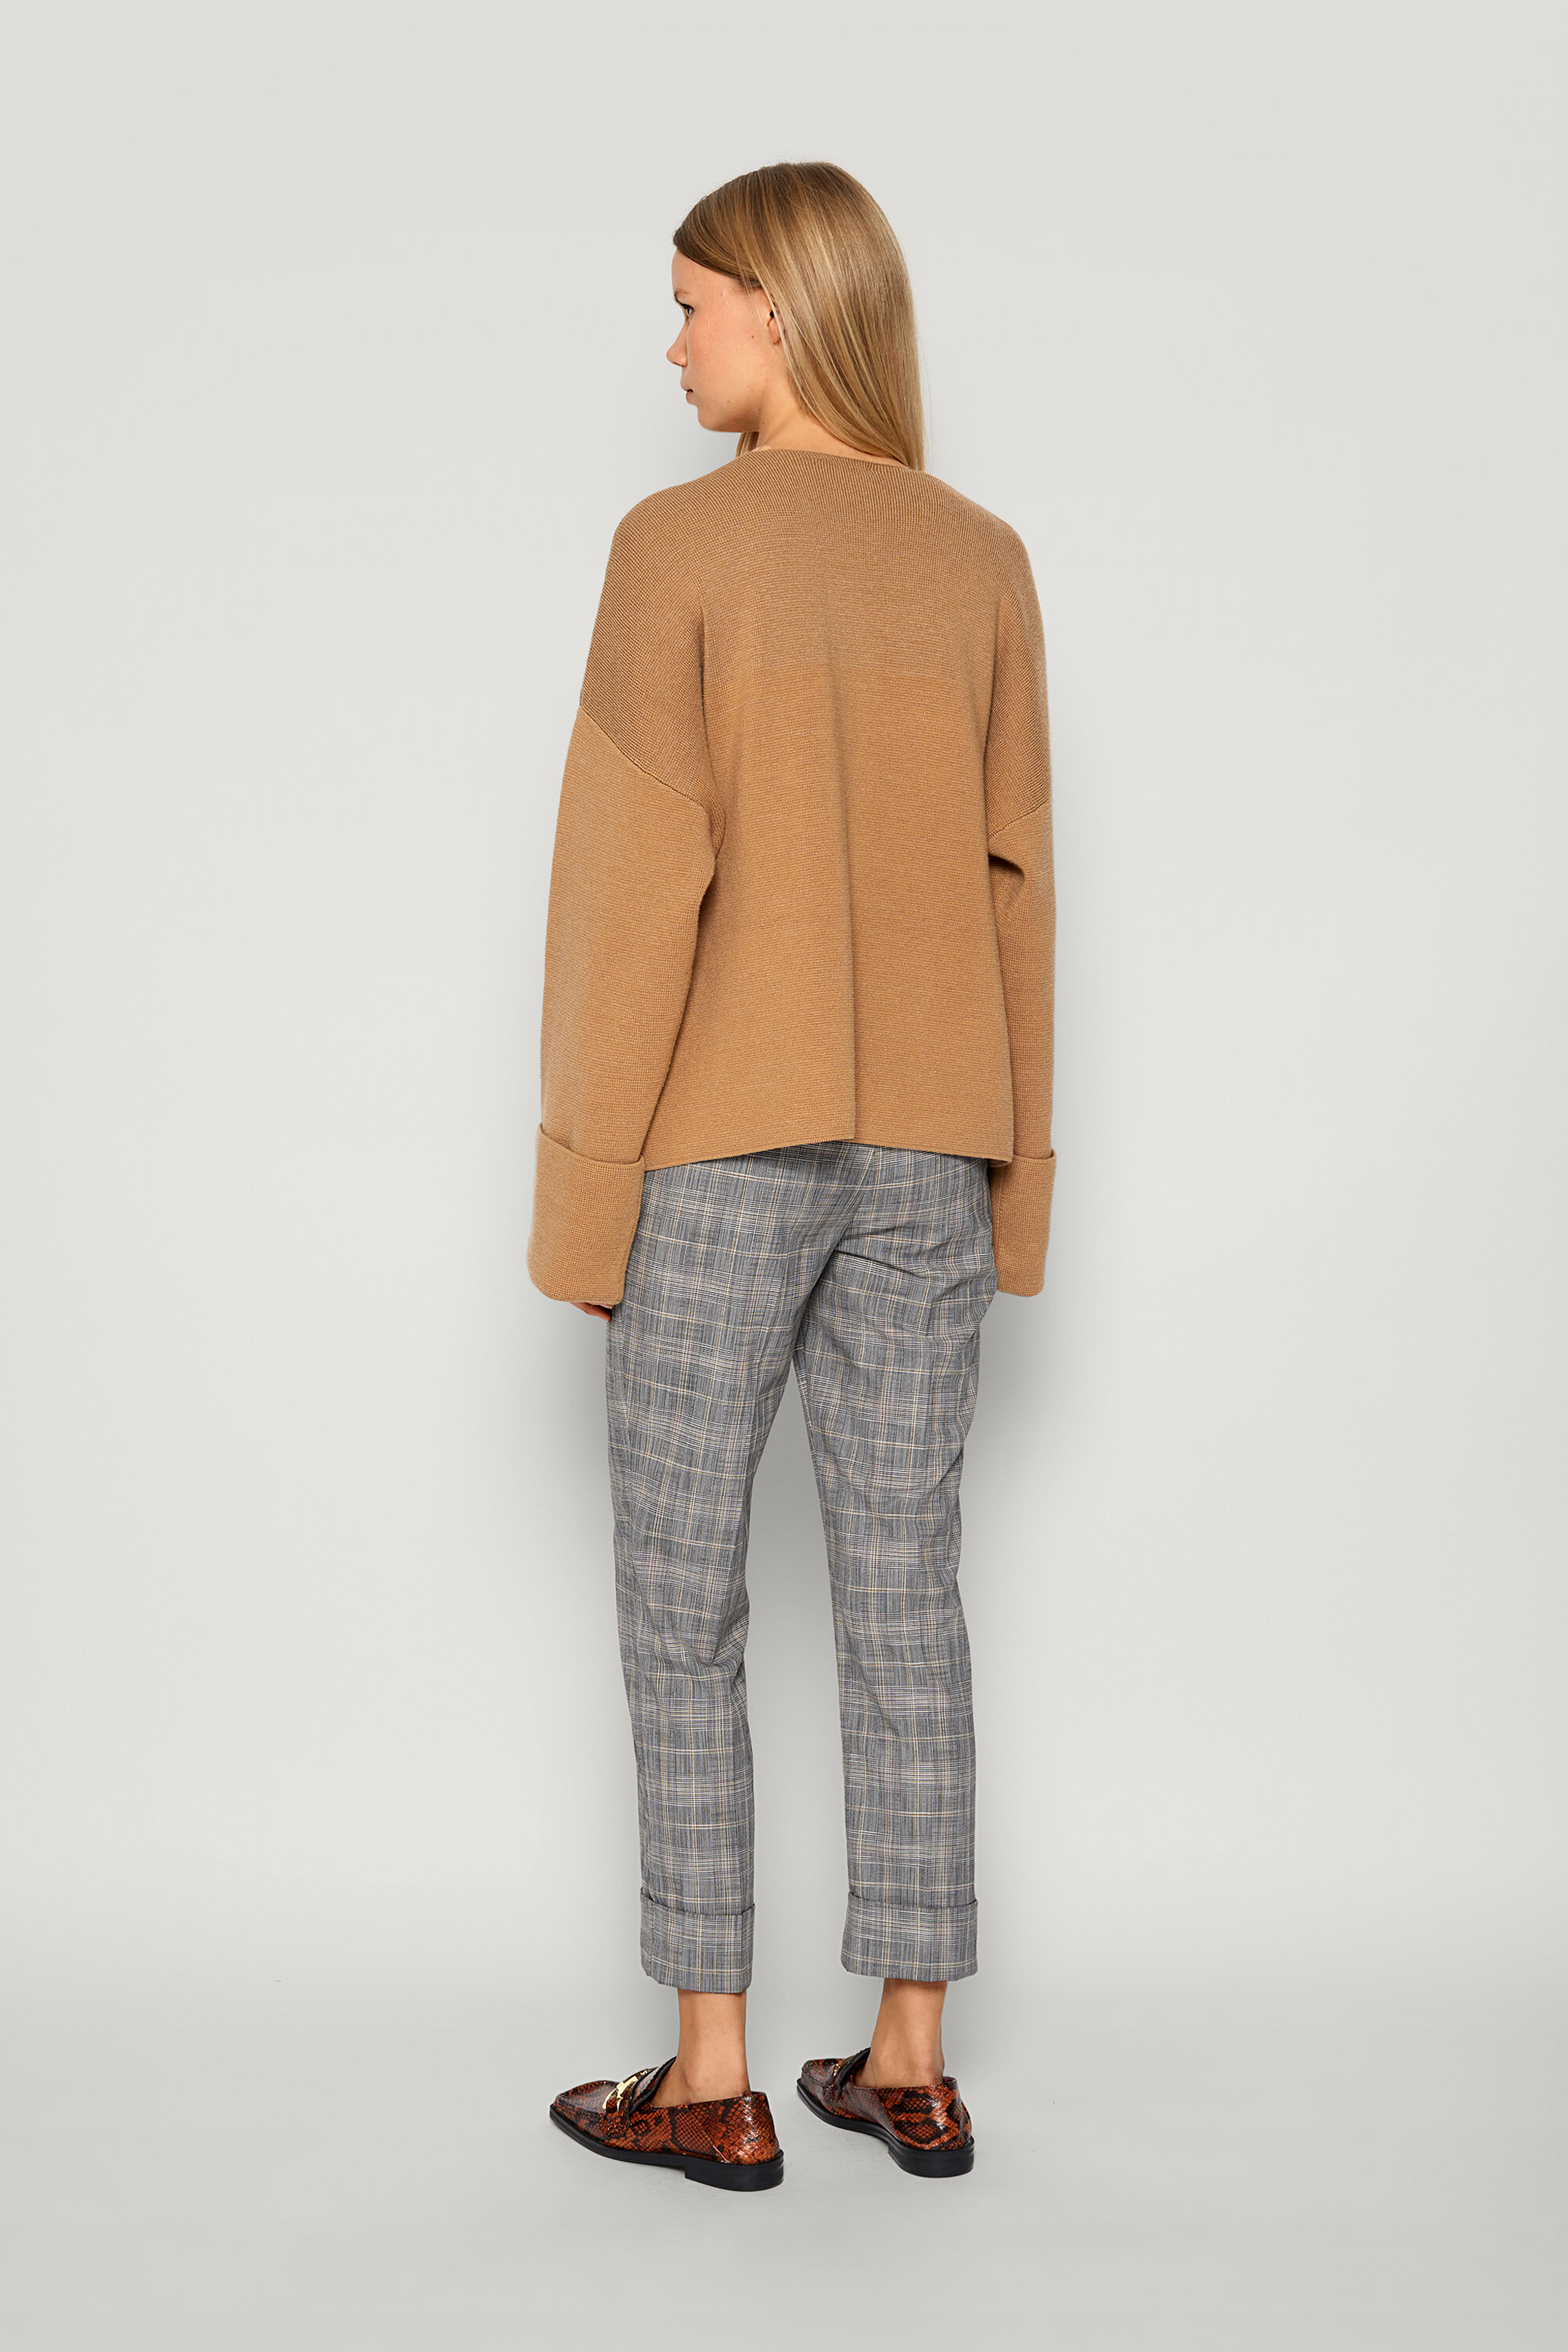 Coalbee Sweater Camel Doe This soft, thick-knit jumper features a deep V-neck and dipped hem - detail image